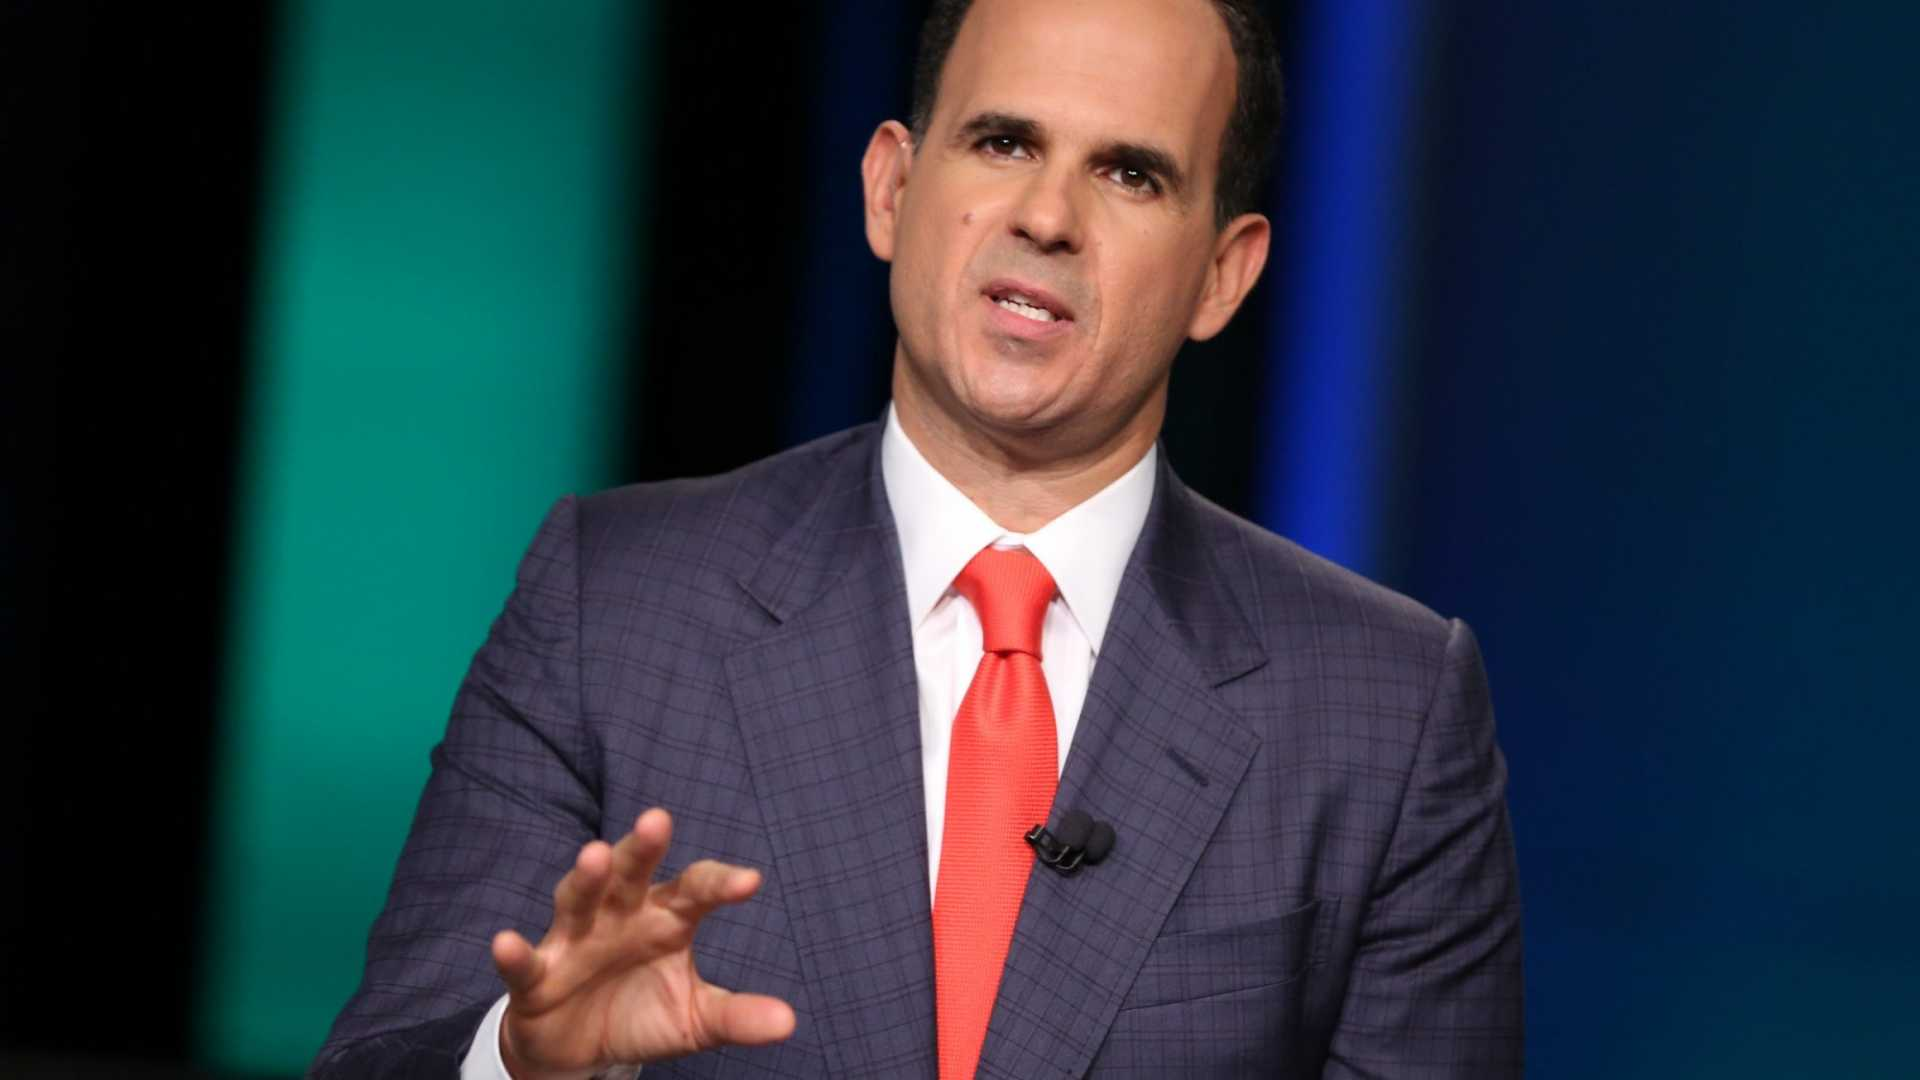 Marcus Lemonis says he wants to see vulnerability in potential partners.